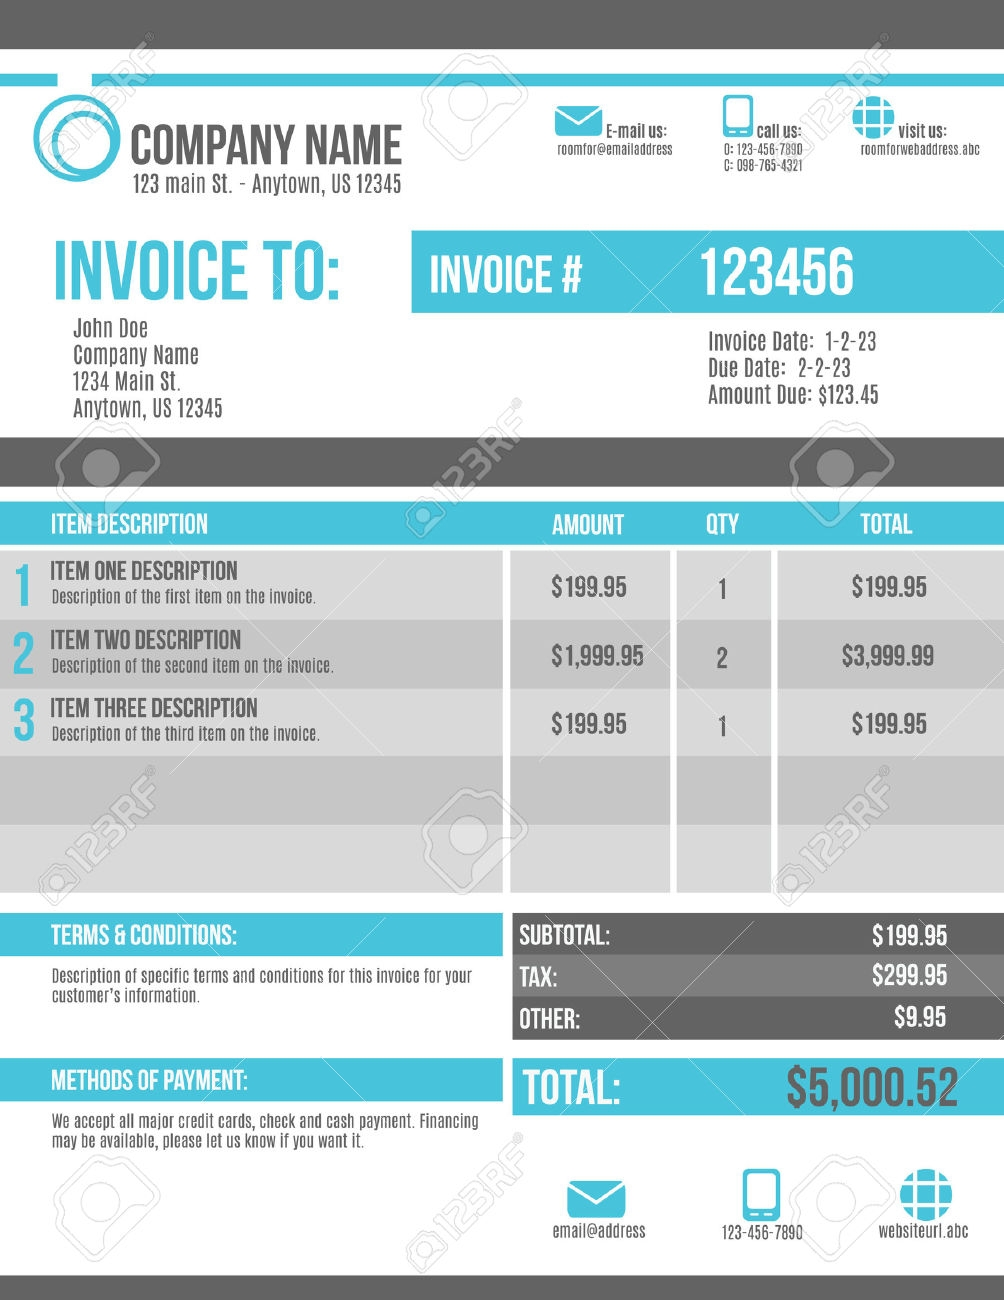 customizable invoice template design royalty free cliparts customizable invoice template